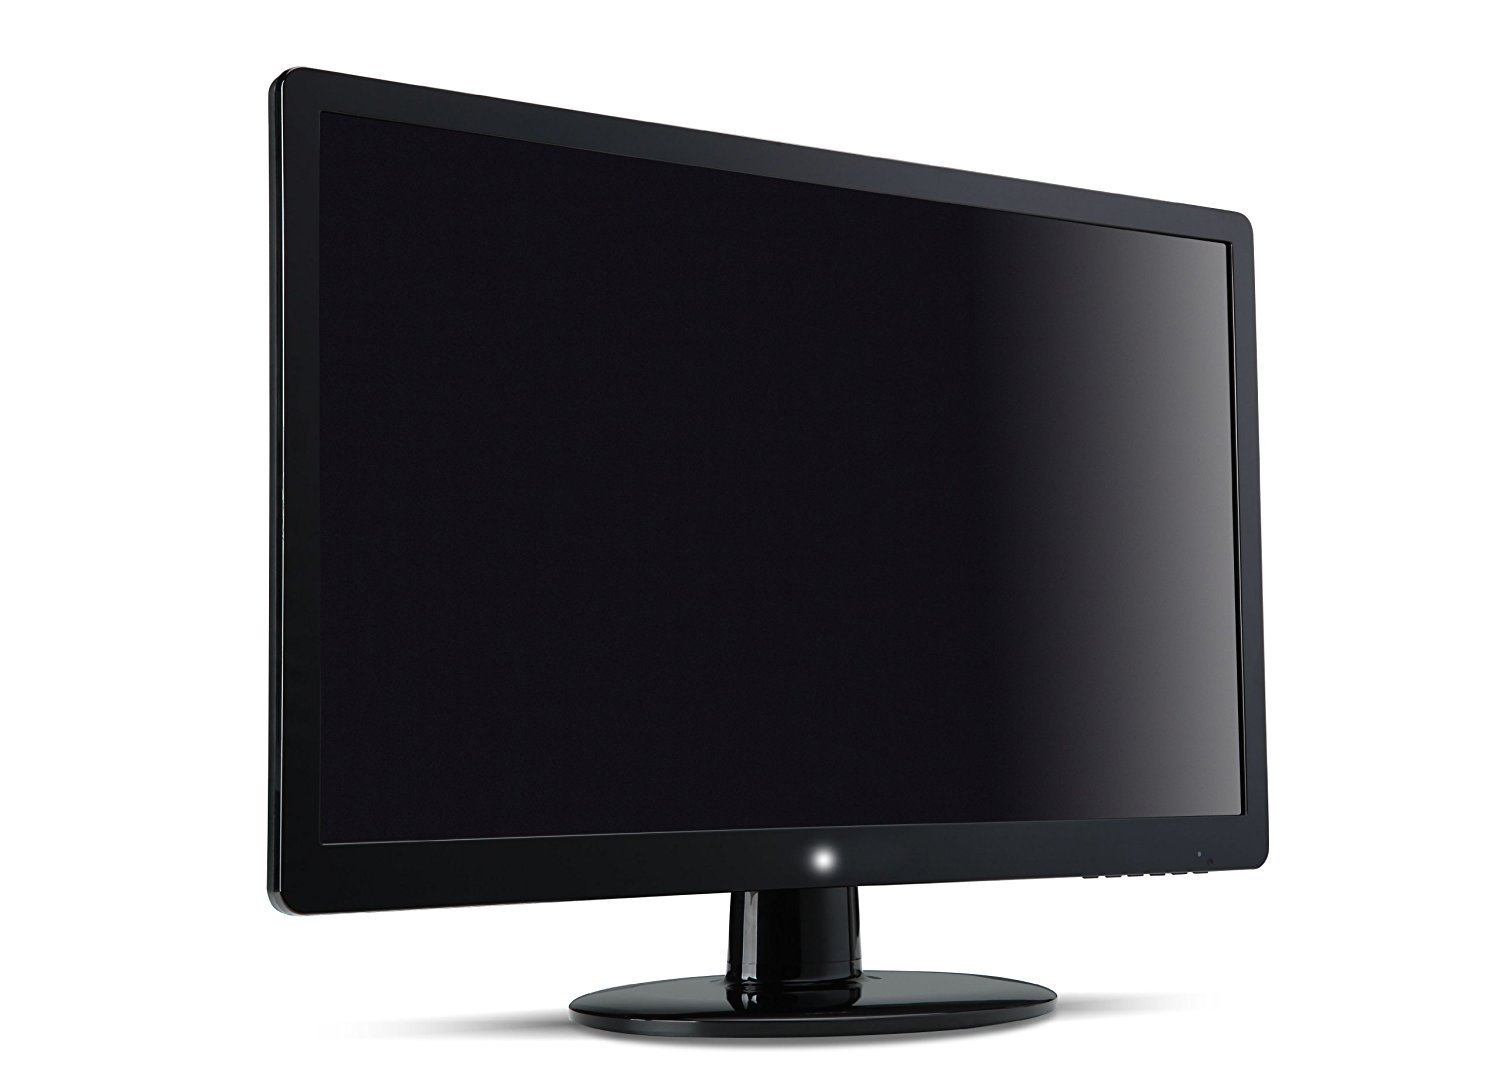 Lightstory 21.5-Inch Widescreen LCD Monitor